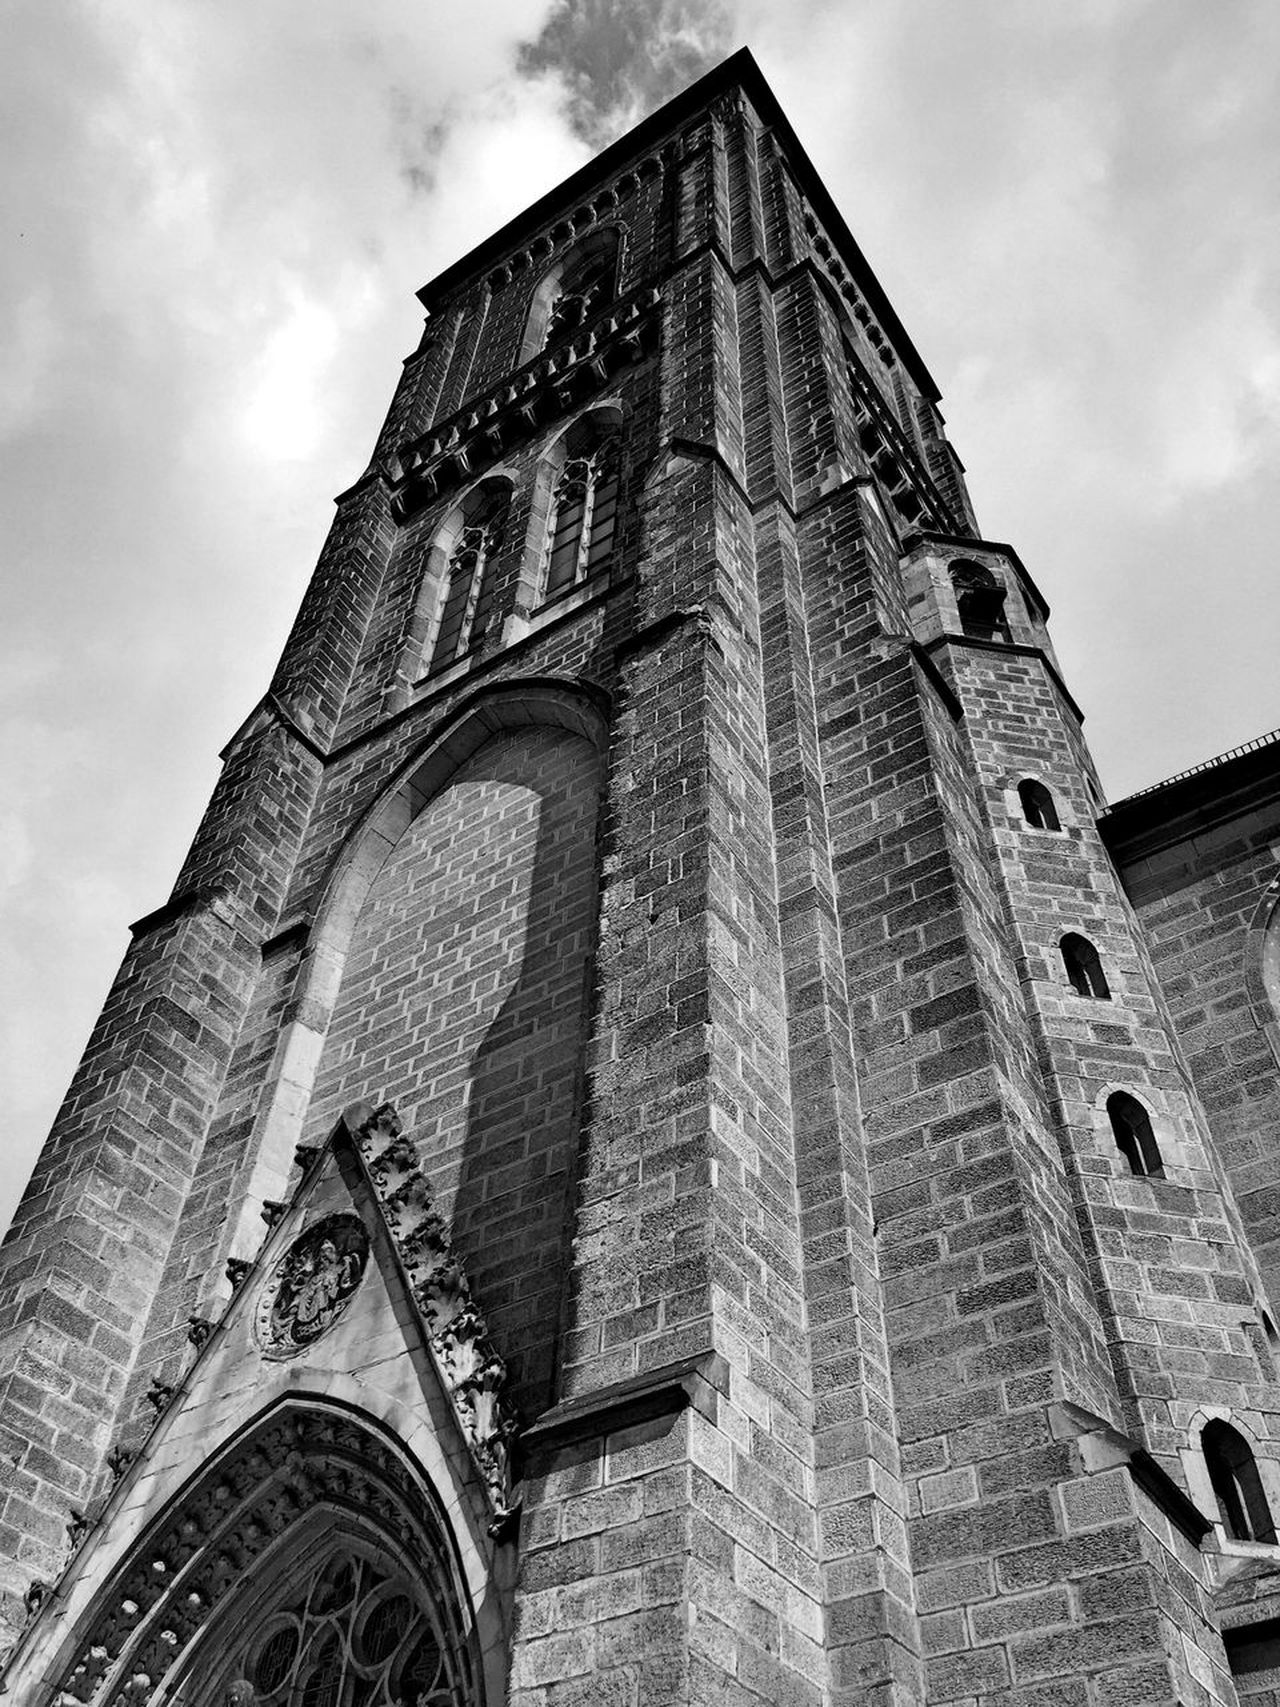 Low Angle View Architecture Built Structure Building Exterior History Day Schwarzweiß Church Kirche Gotisch Gotic Blackandwhite Photography Bnw_collection Blackandwhite Sky Himmel Architecture_bw The Architect - 2017 EyeEm Awards